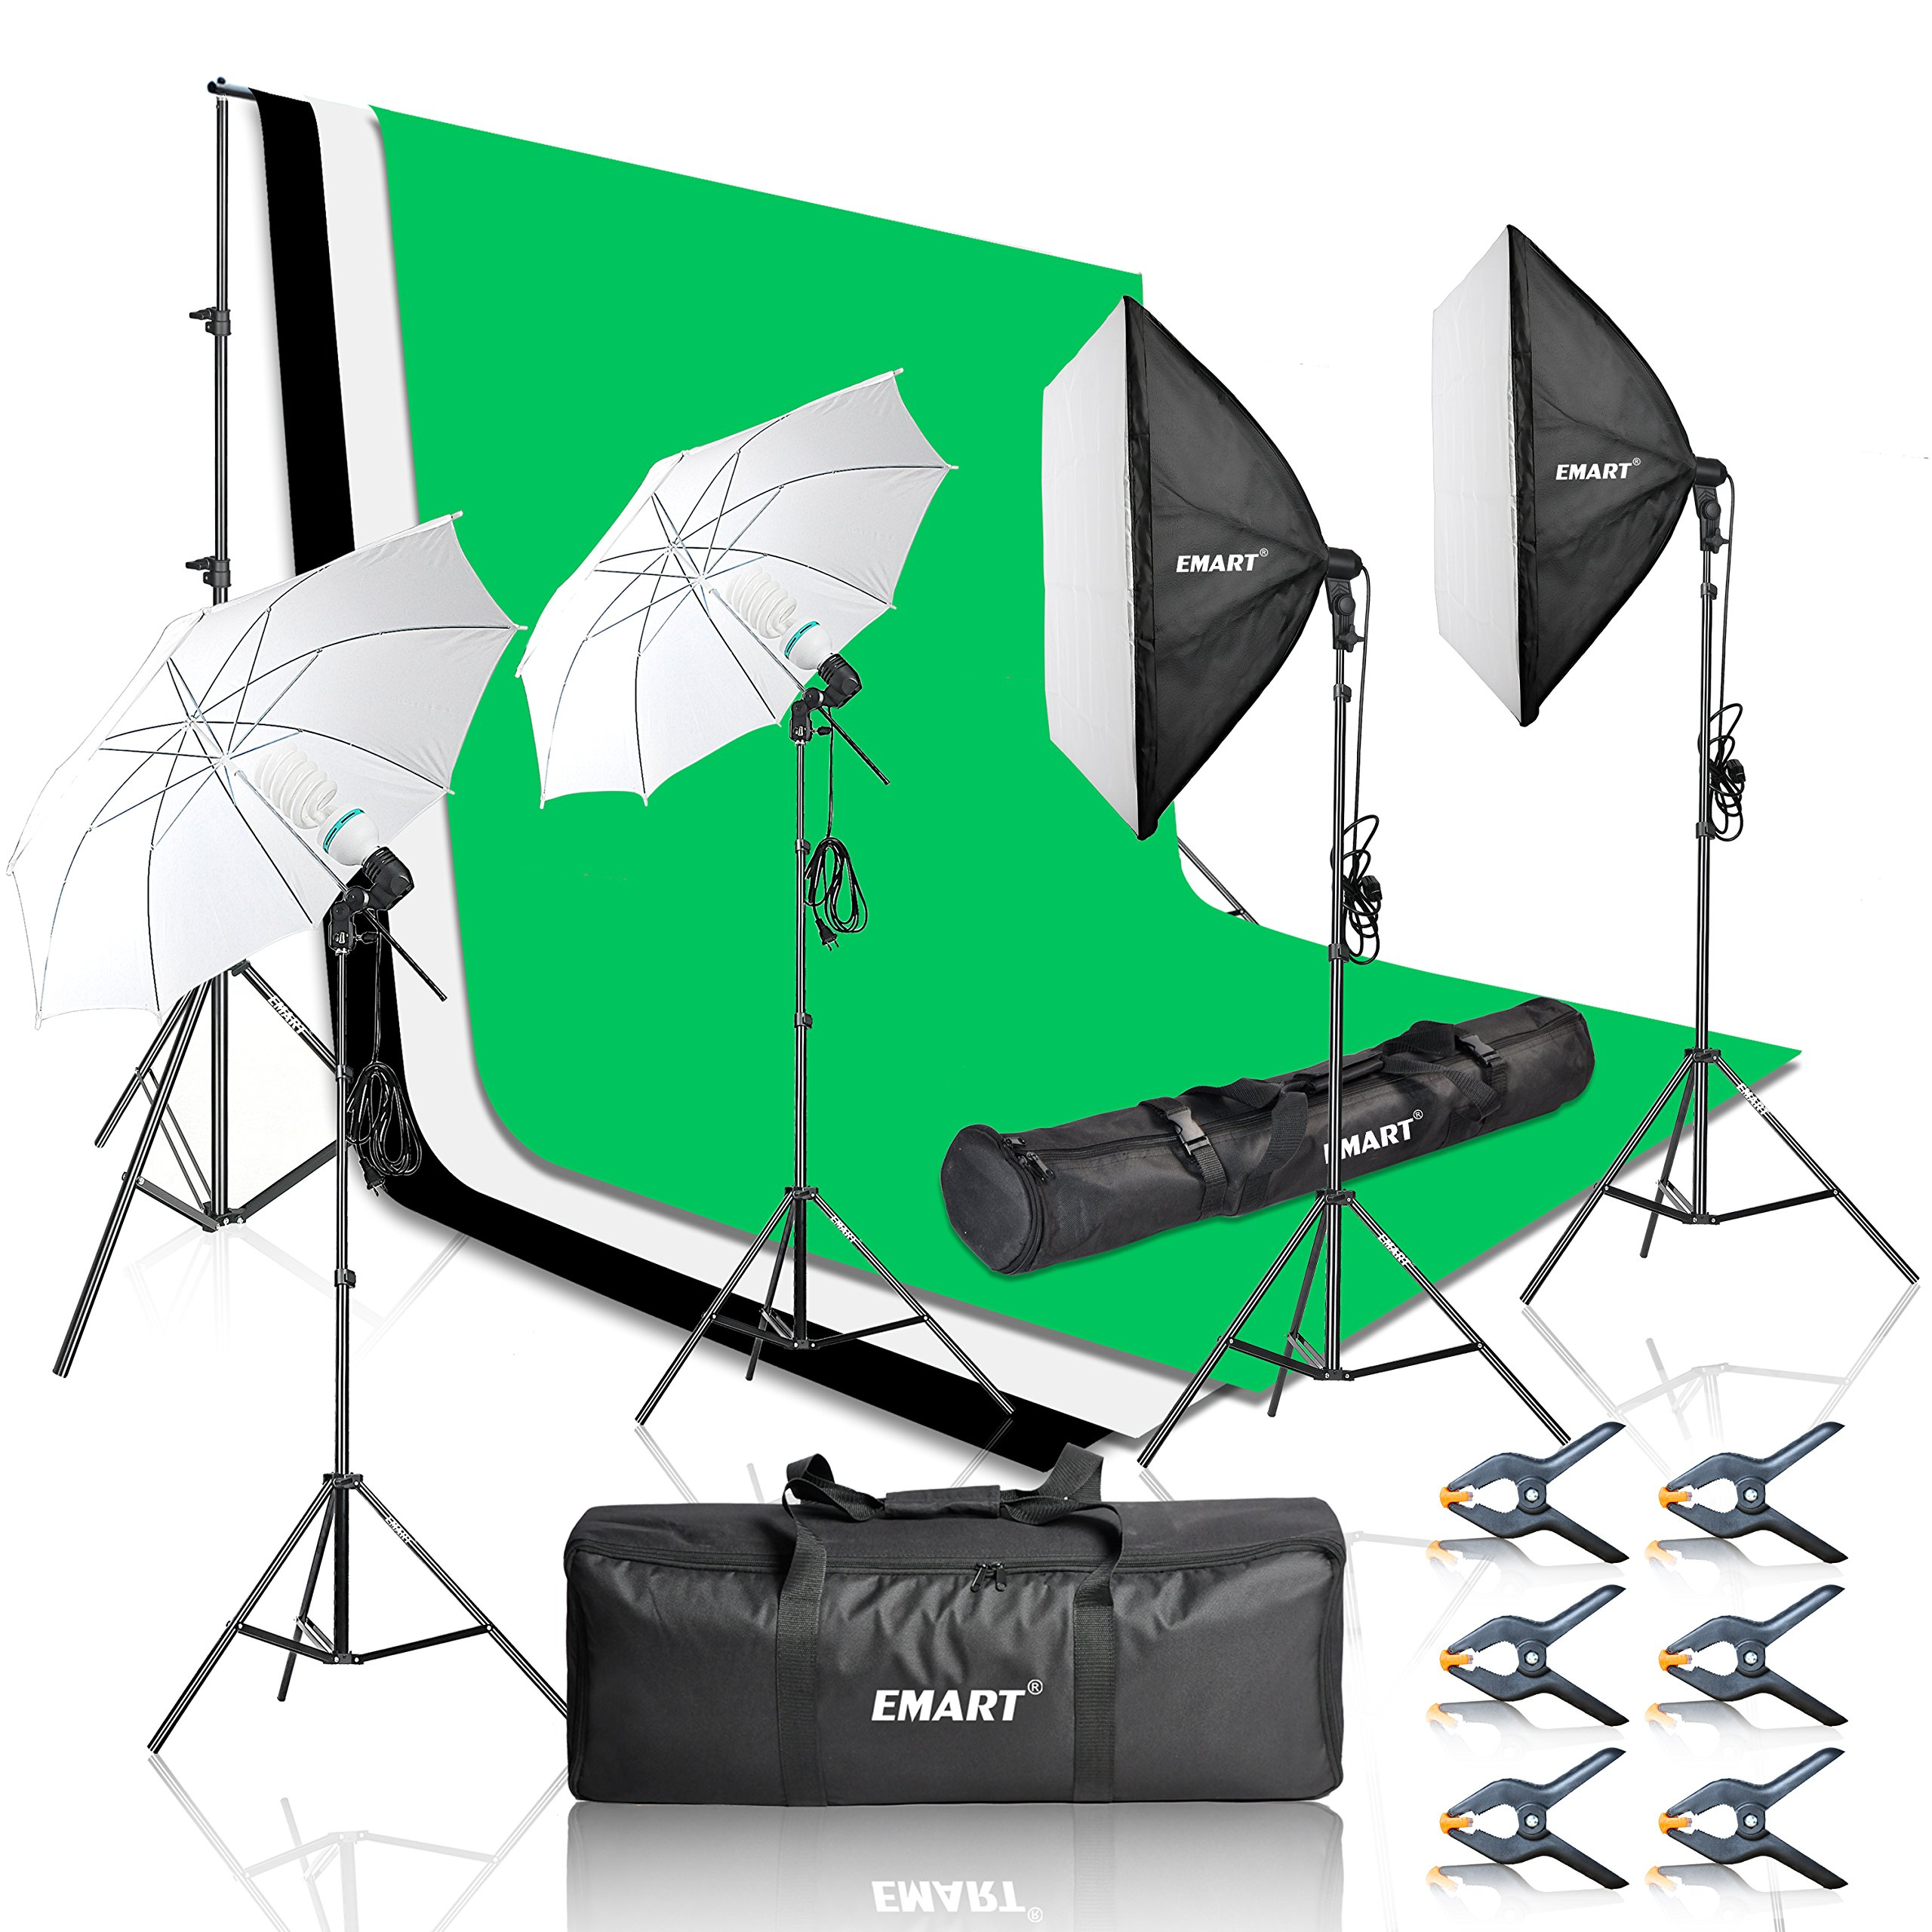 Emart 2000W Photography Video Studio Lighting Kit, Softbox Umbrella Continuous Photo Lighting, 8.5 x 10 Feet Backdrop Stand Support System, 3 Muslin Backdrops by EMART